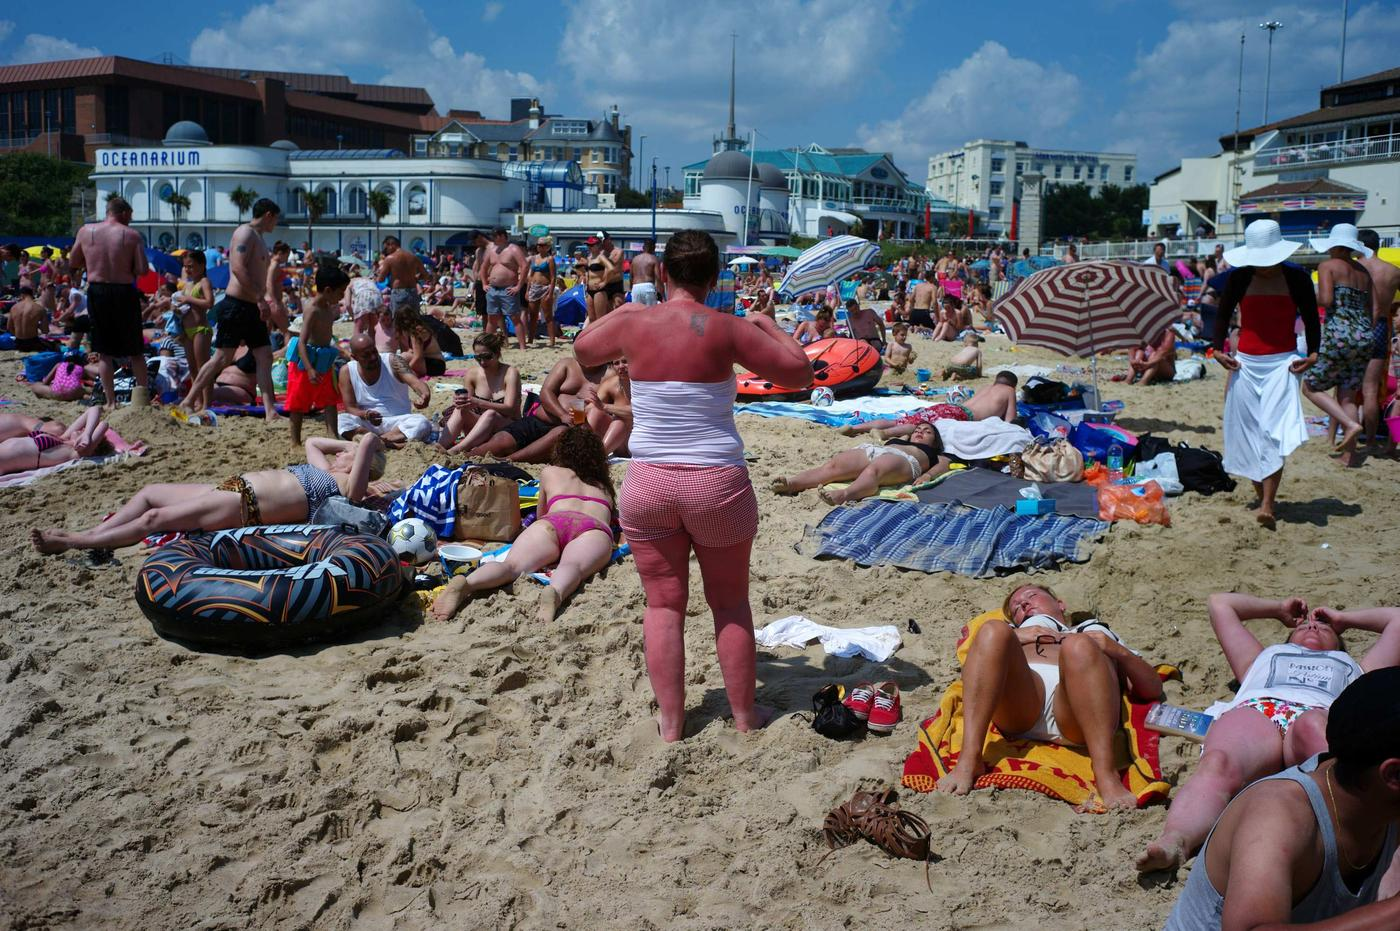 We still can't get the hang of tanning (Picture: Kieran Doherty/Reuters)